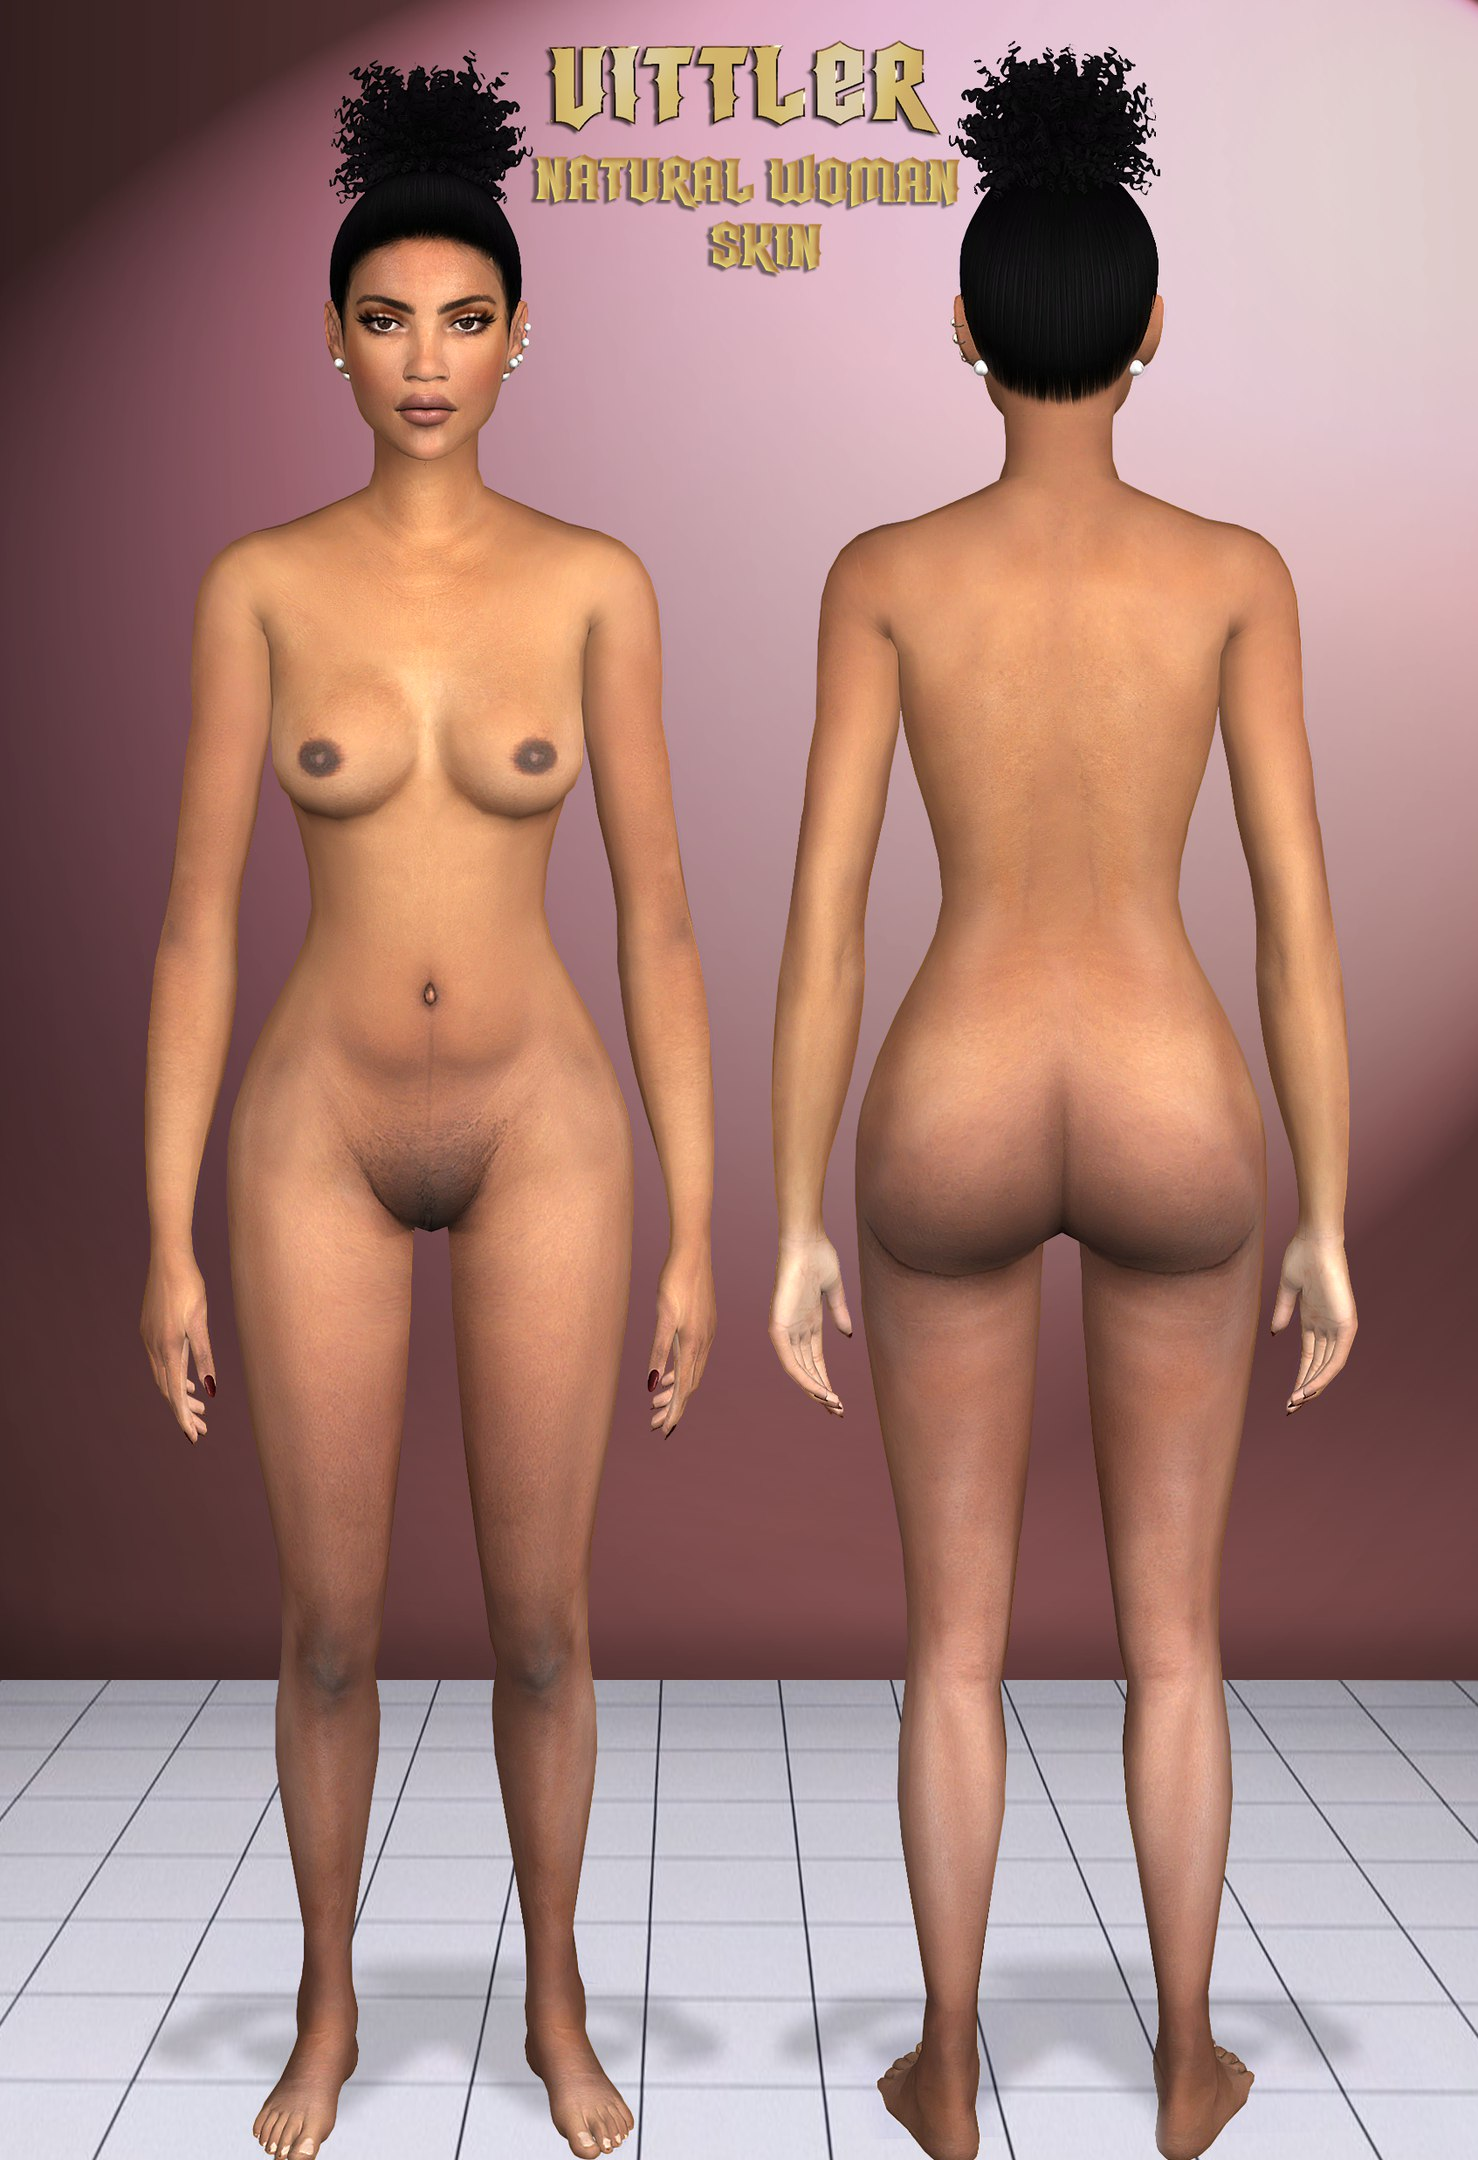 Natural Woman Skin by Vittler